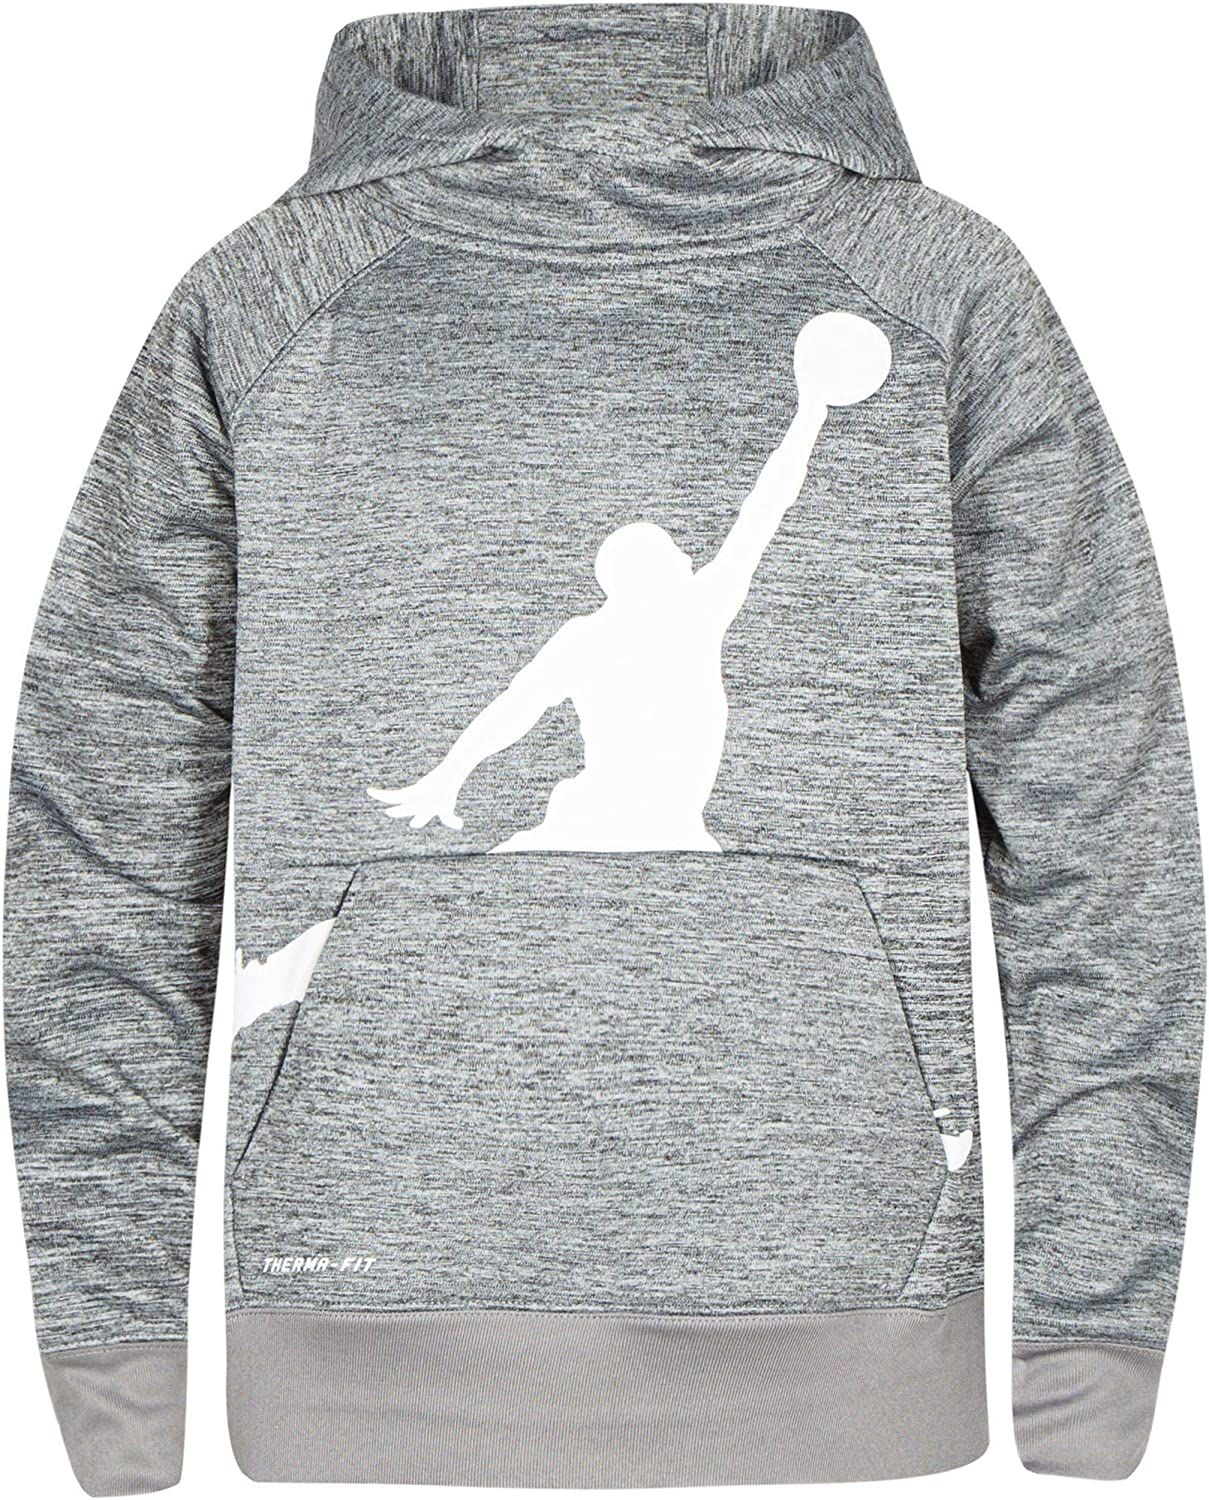 Jordan Ranking TOP11 Boys Youth Max 41% OFF Performance Therma Fit L M Size Hoodie S